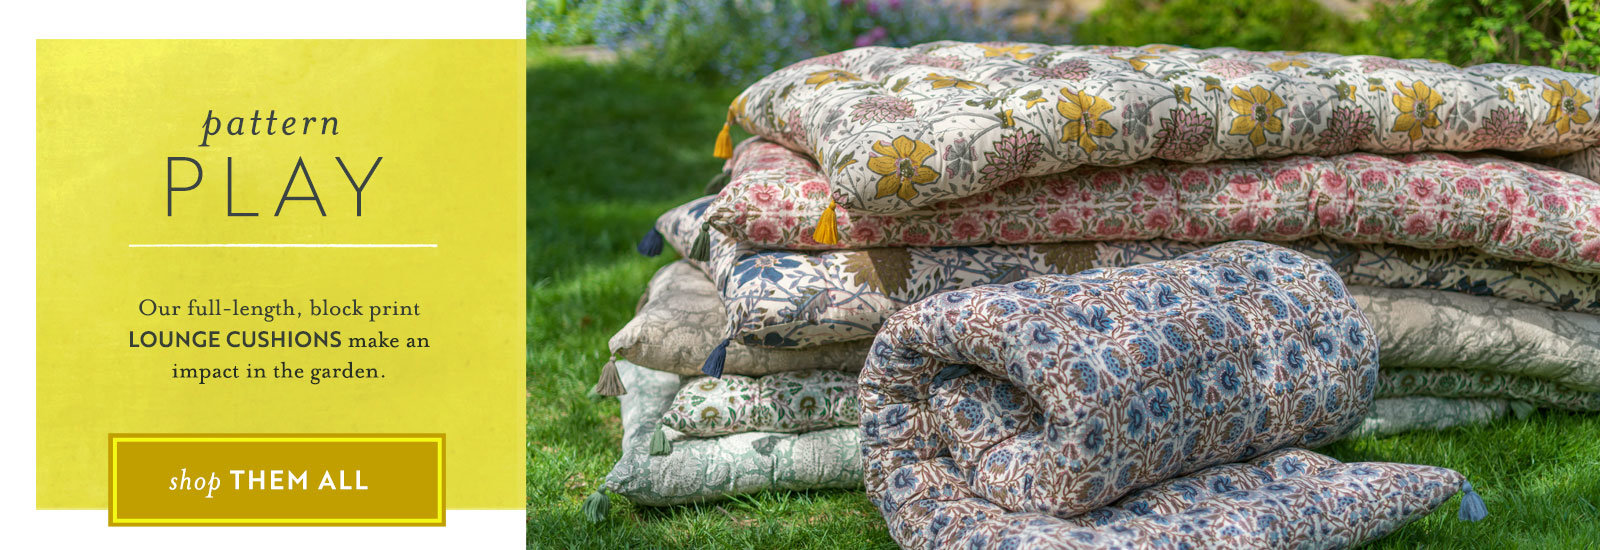 Pattern Play | An effortless mix of our block print lounge cushions + Sunbrella pillows makes a big impact in the garden.